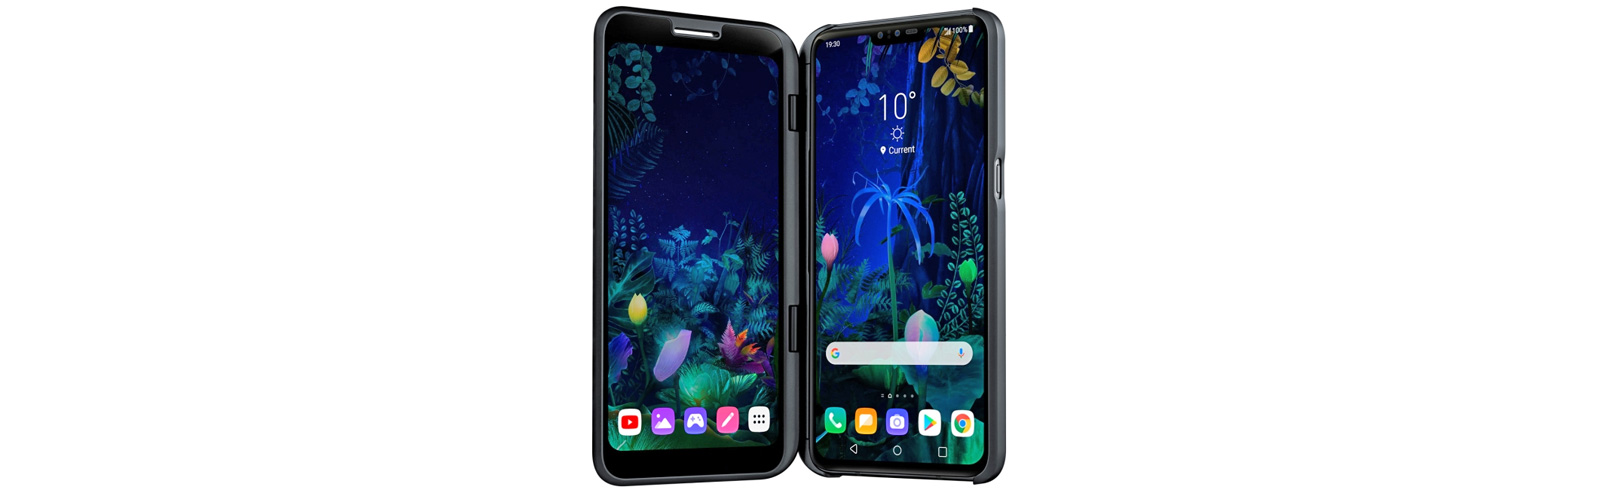 LG will launch a dual-screen successor to the LG V50 ThinQ